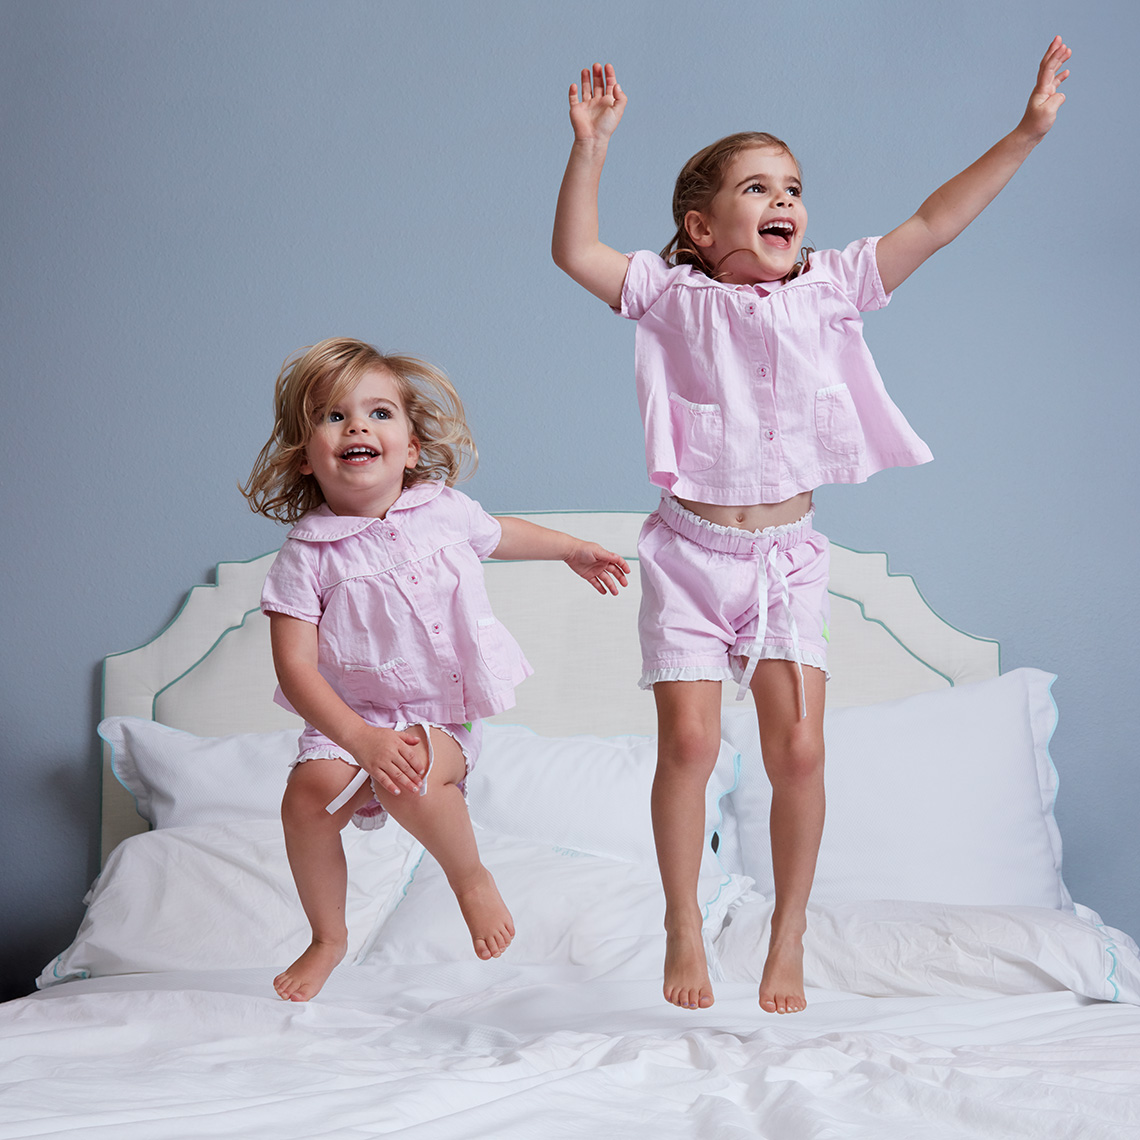 Color portrait of two little sisters in their pajamas jumping on their parent